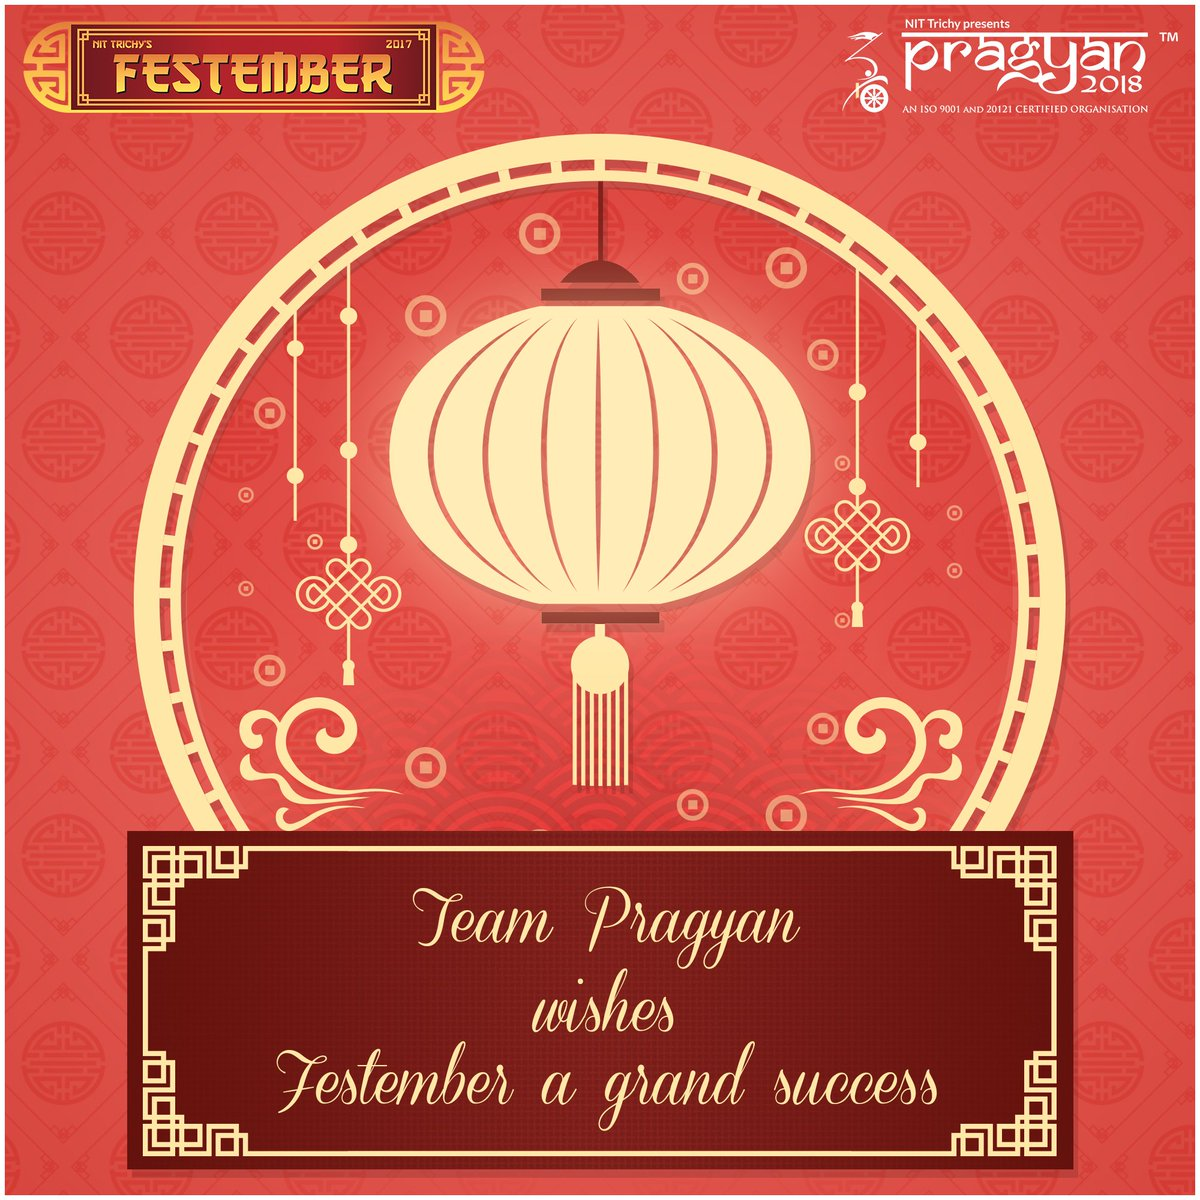 #Pragyan wishes the rising and raving @festember 2017 the very best for coming through with flying colours. #RiseAndRave #Festember<br>http://pic.twitter.com/AMMK3stpIo